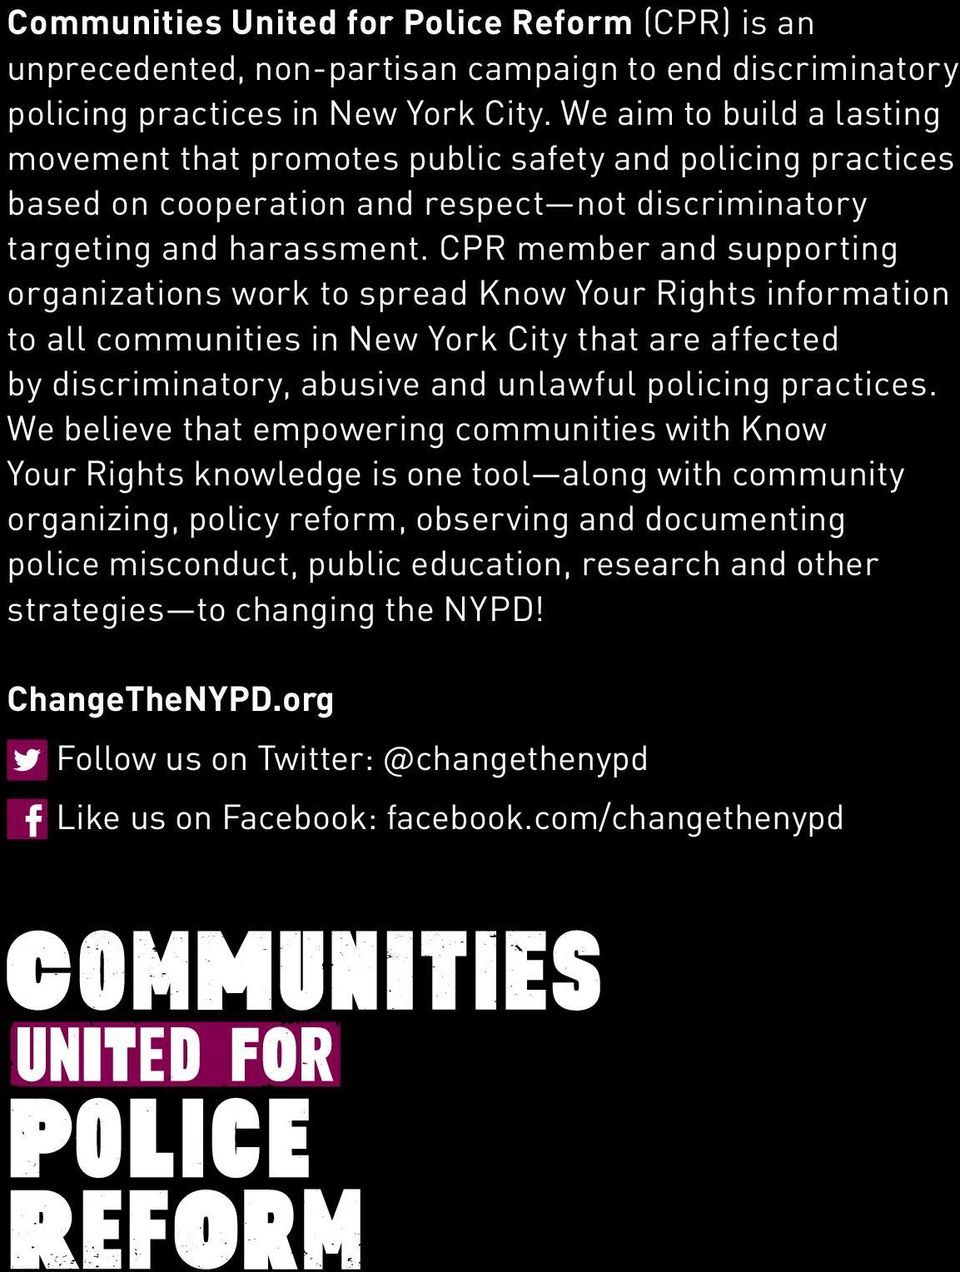 CPR member and supporting organizations work to spread Know Your Rights information to all communities in New York City that are affected by discriminatory, abusive and unlawful policing practices.